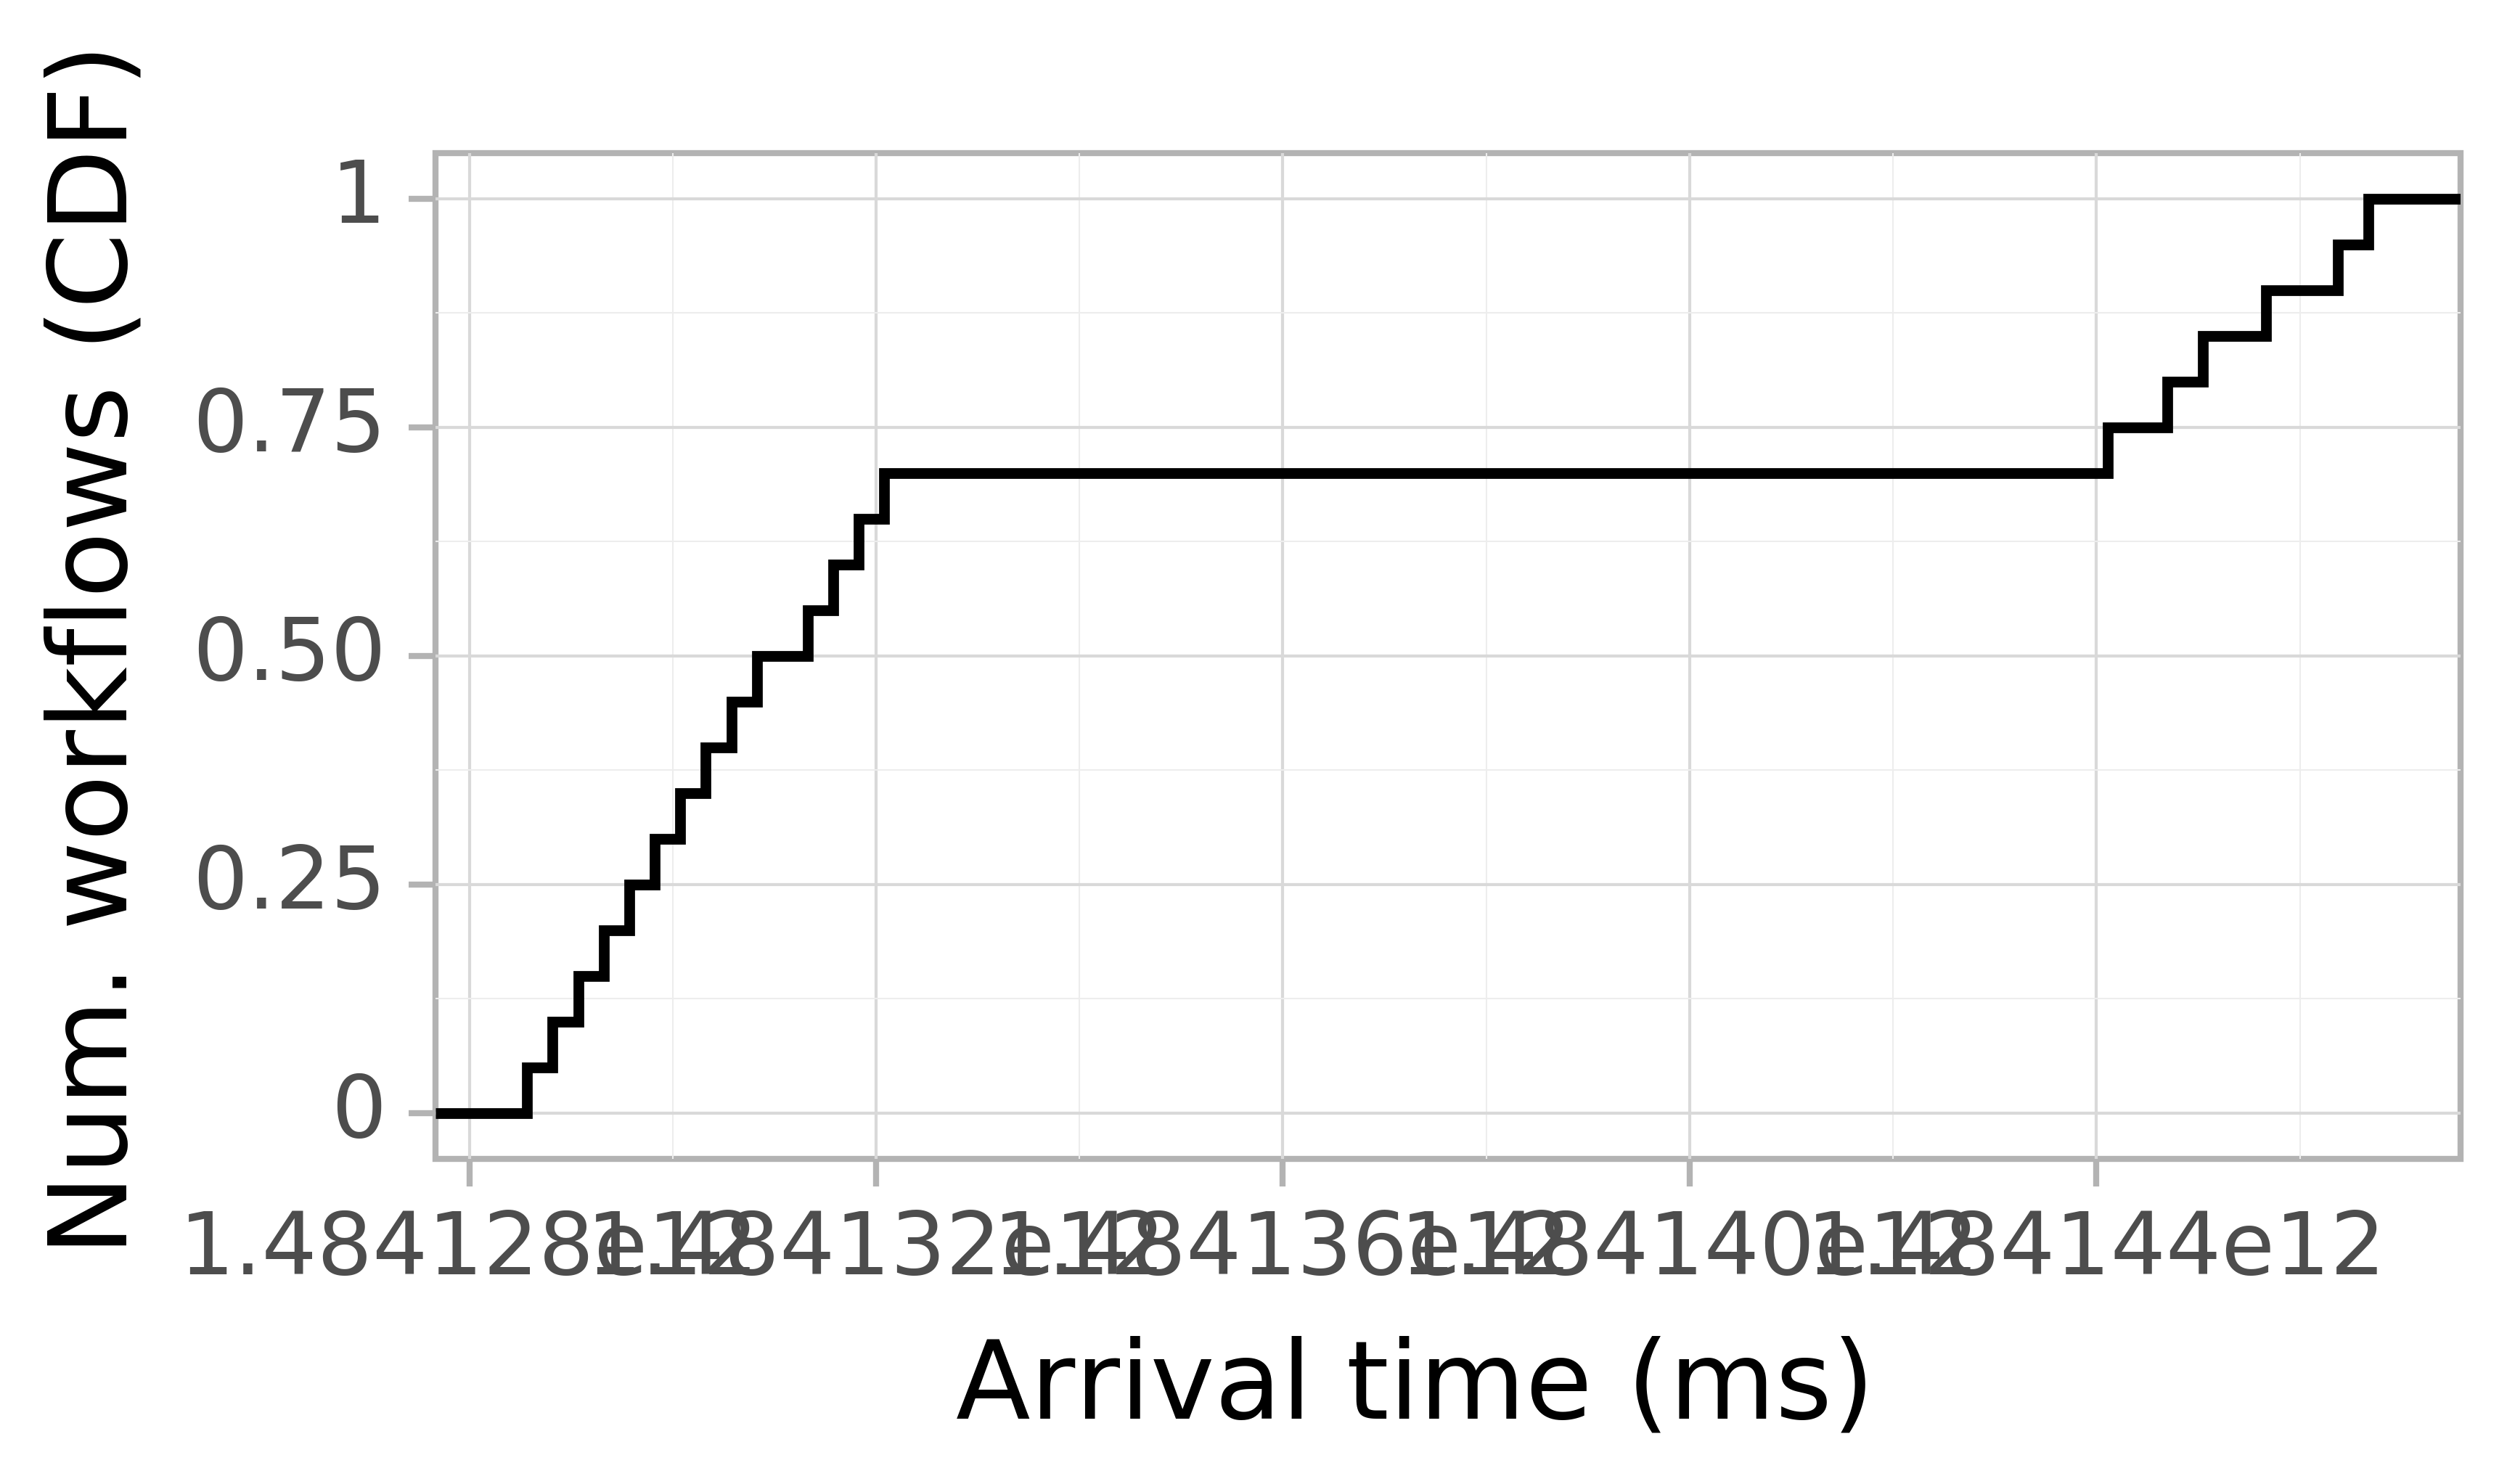 Job arrival CDF graph for the askalon-new_ee21 trace.